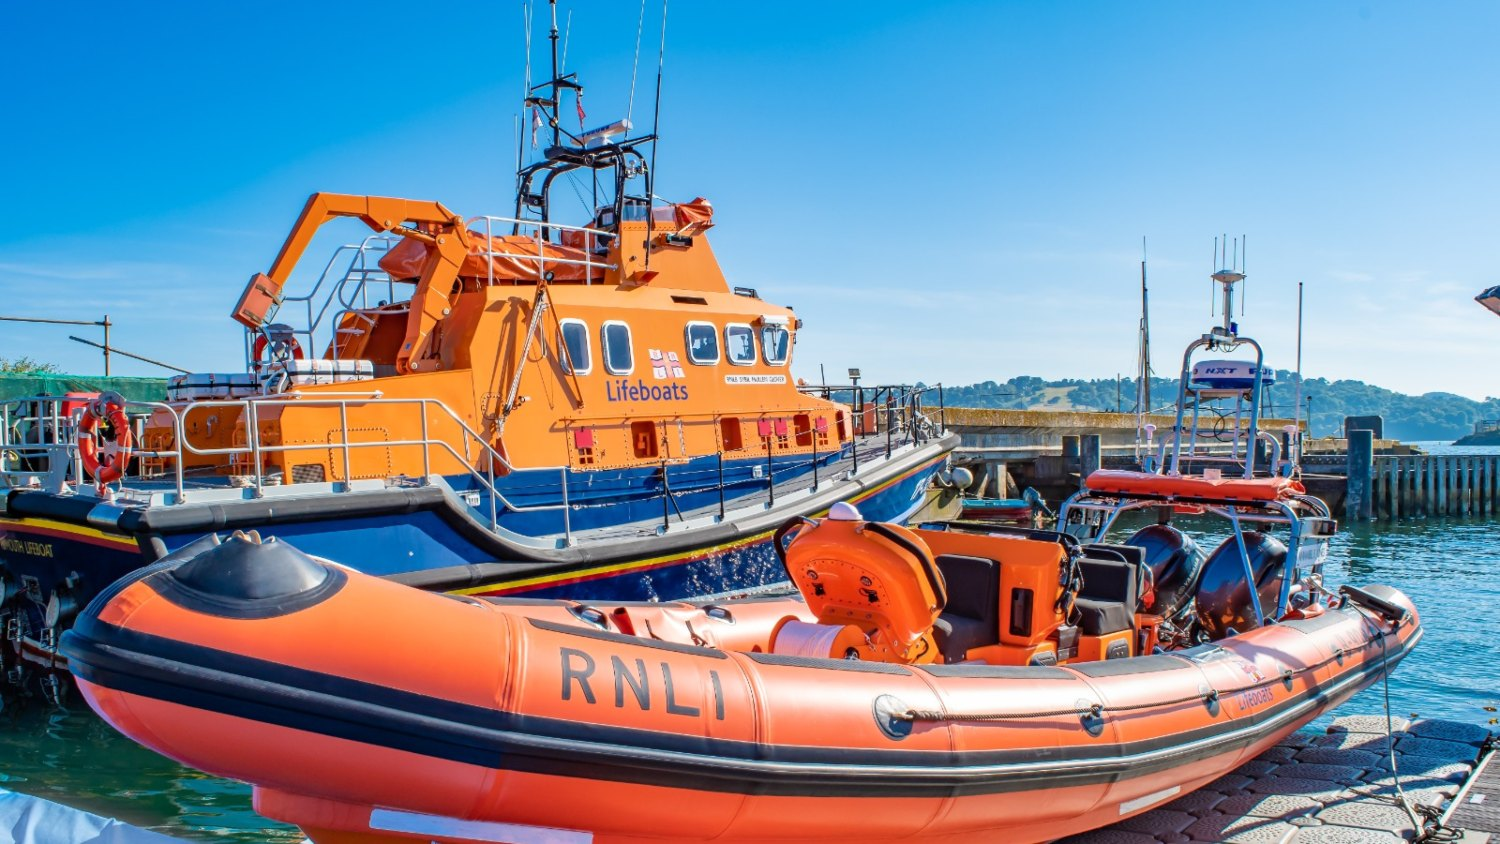 Plymouth's lifeboats on the water